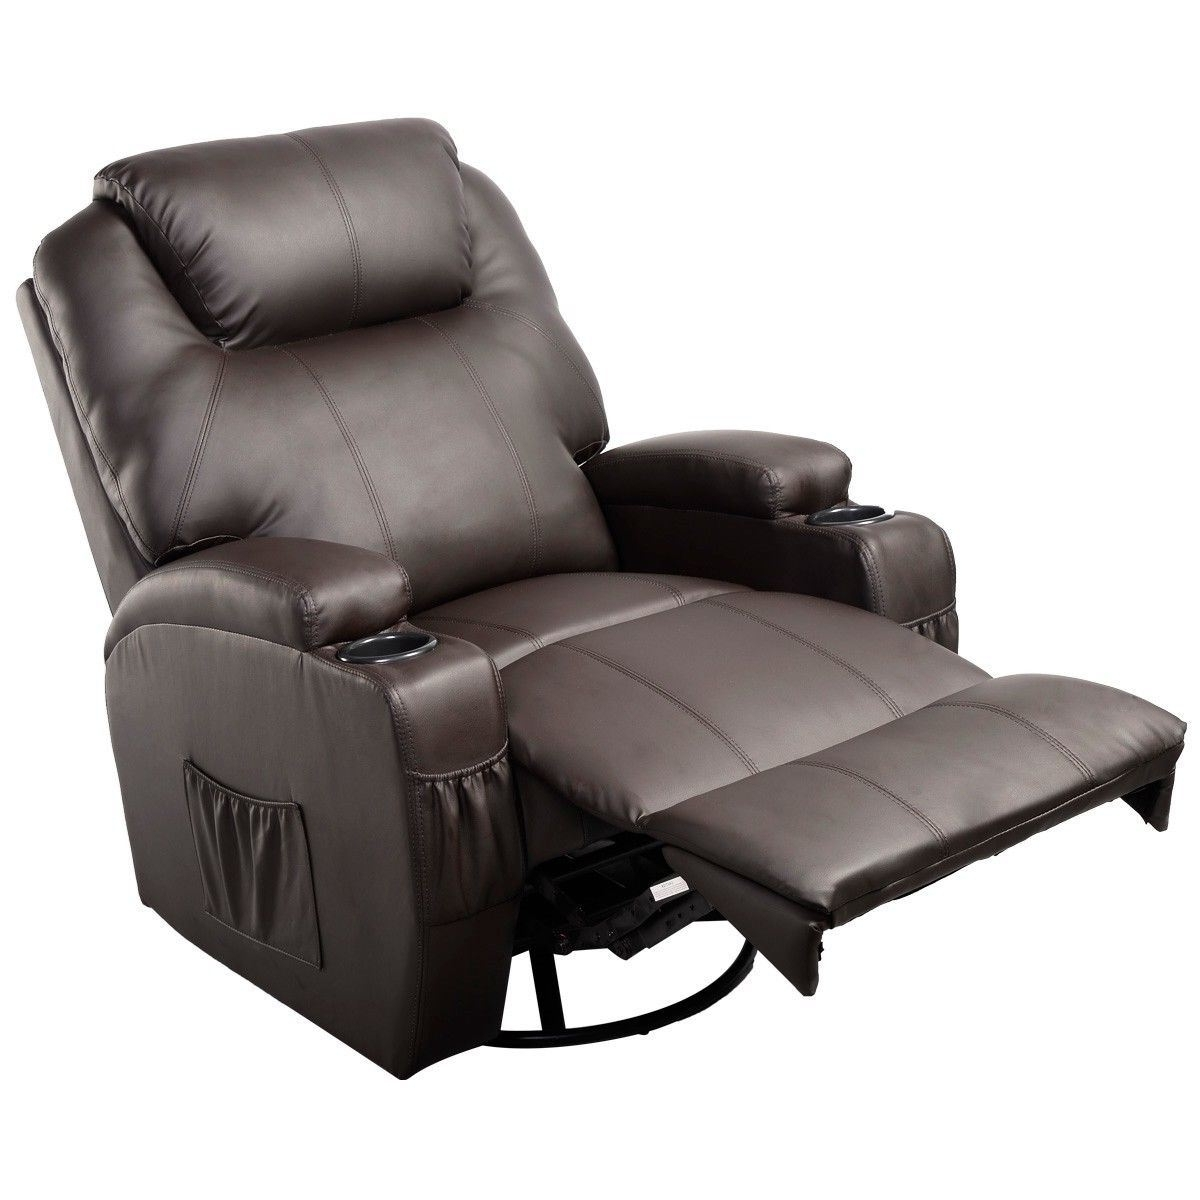 Ergonomic Heated Massage Recliner Sofa Chair With Regard To Ergonomic Sofas And Chairs (View 3 of 15)